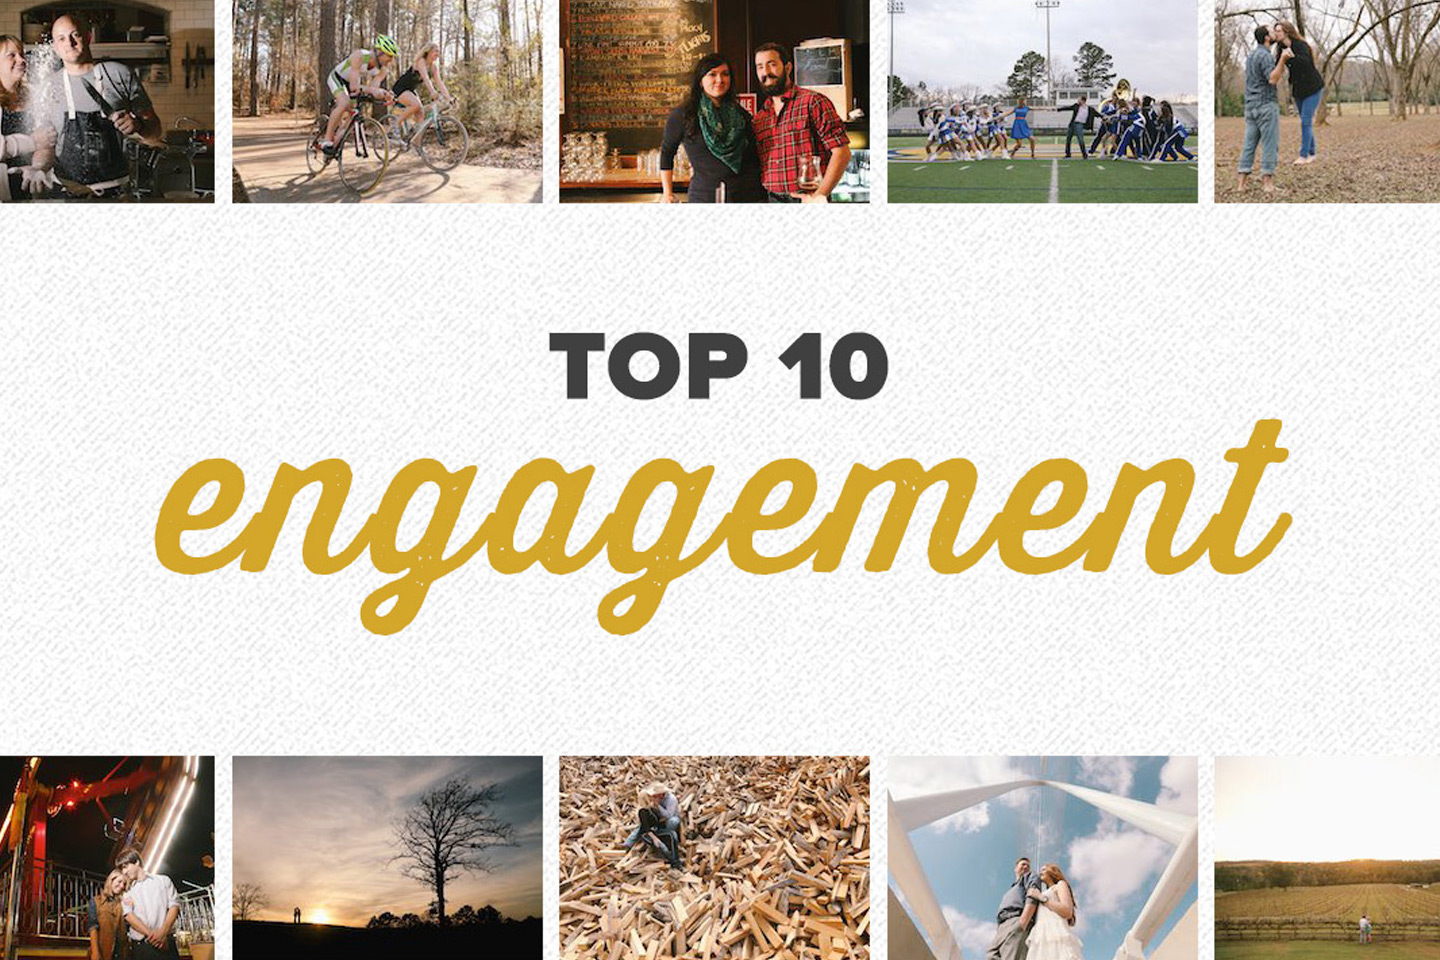 13166Top 10 2014 | Engagement